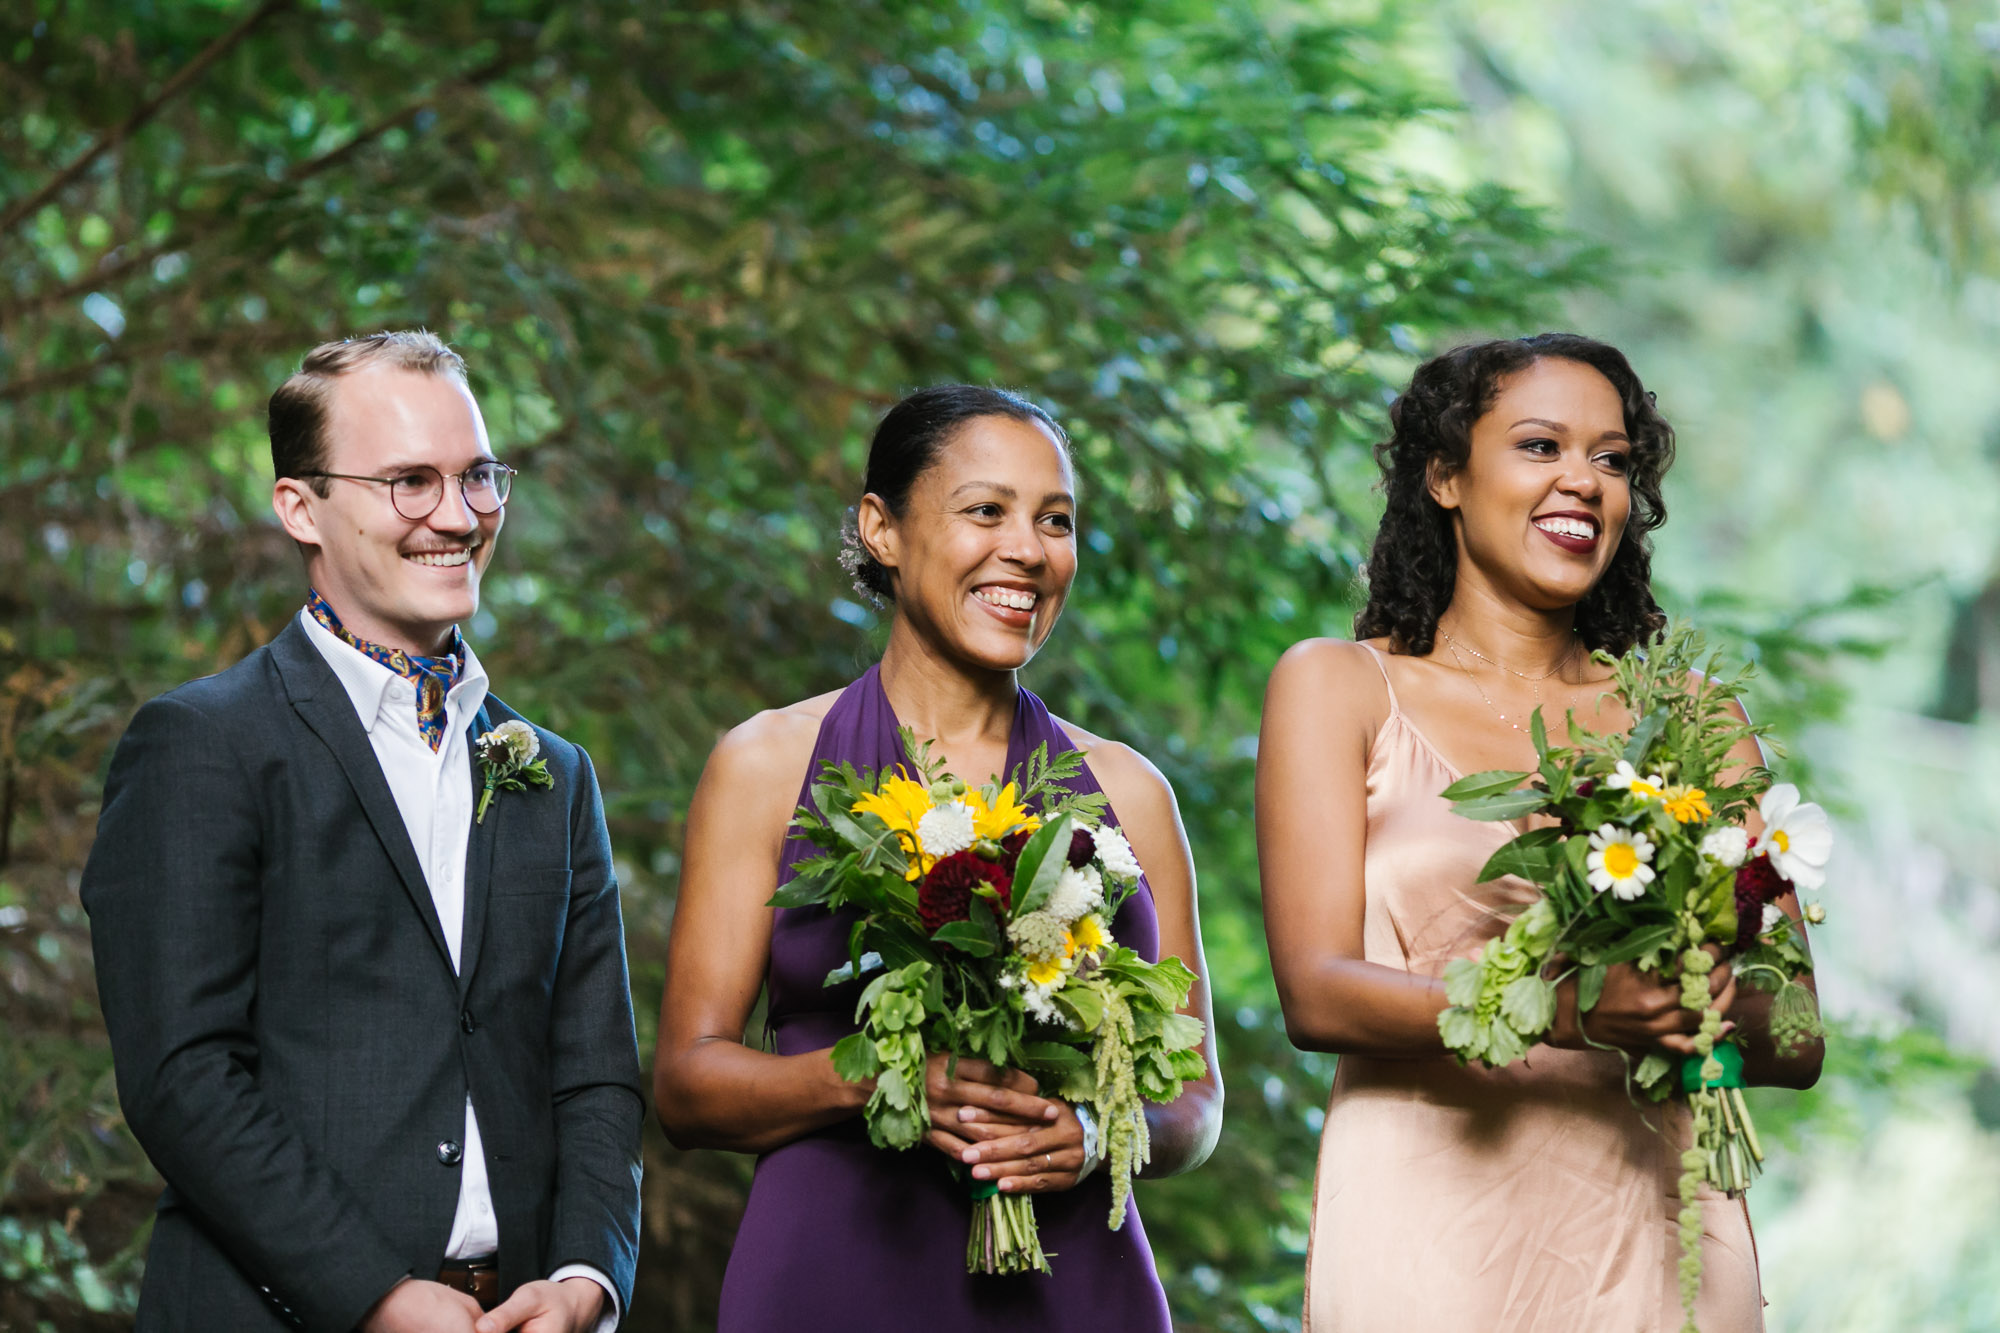 Bridesmaids smile during wedding ceremony holding handmade bouquets